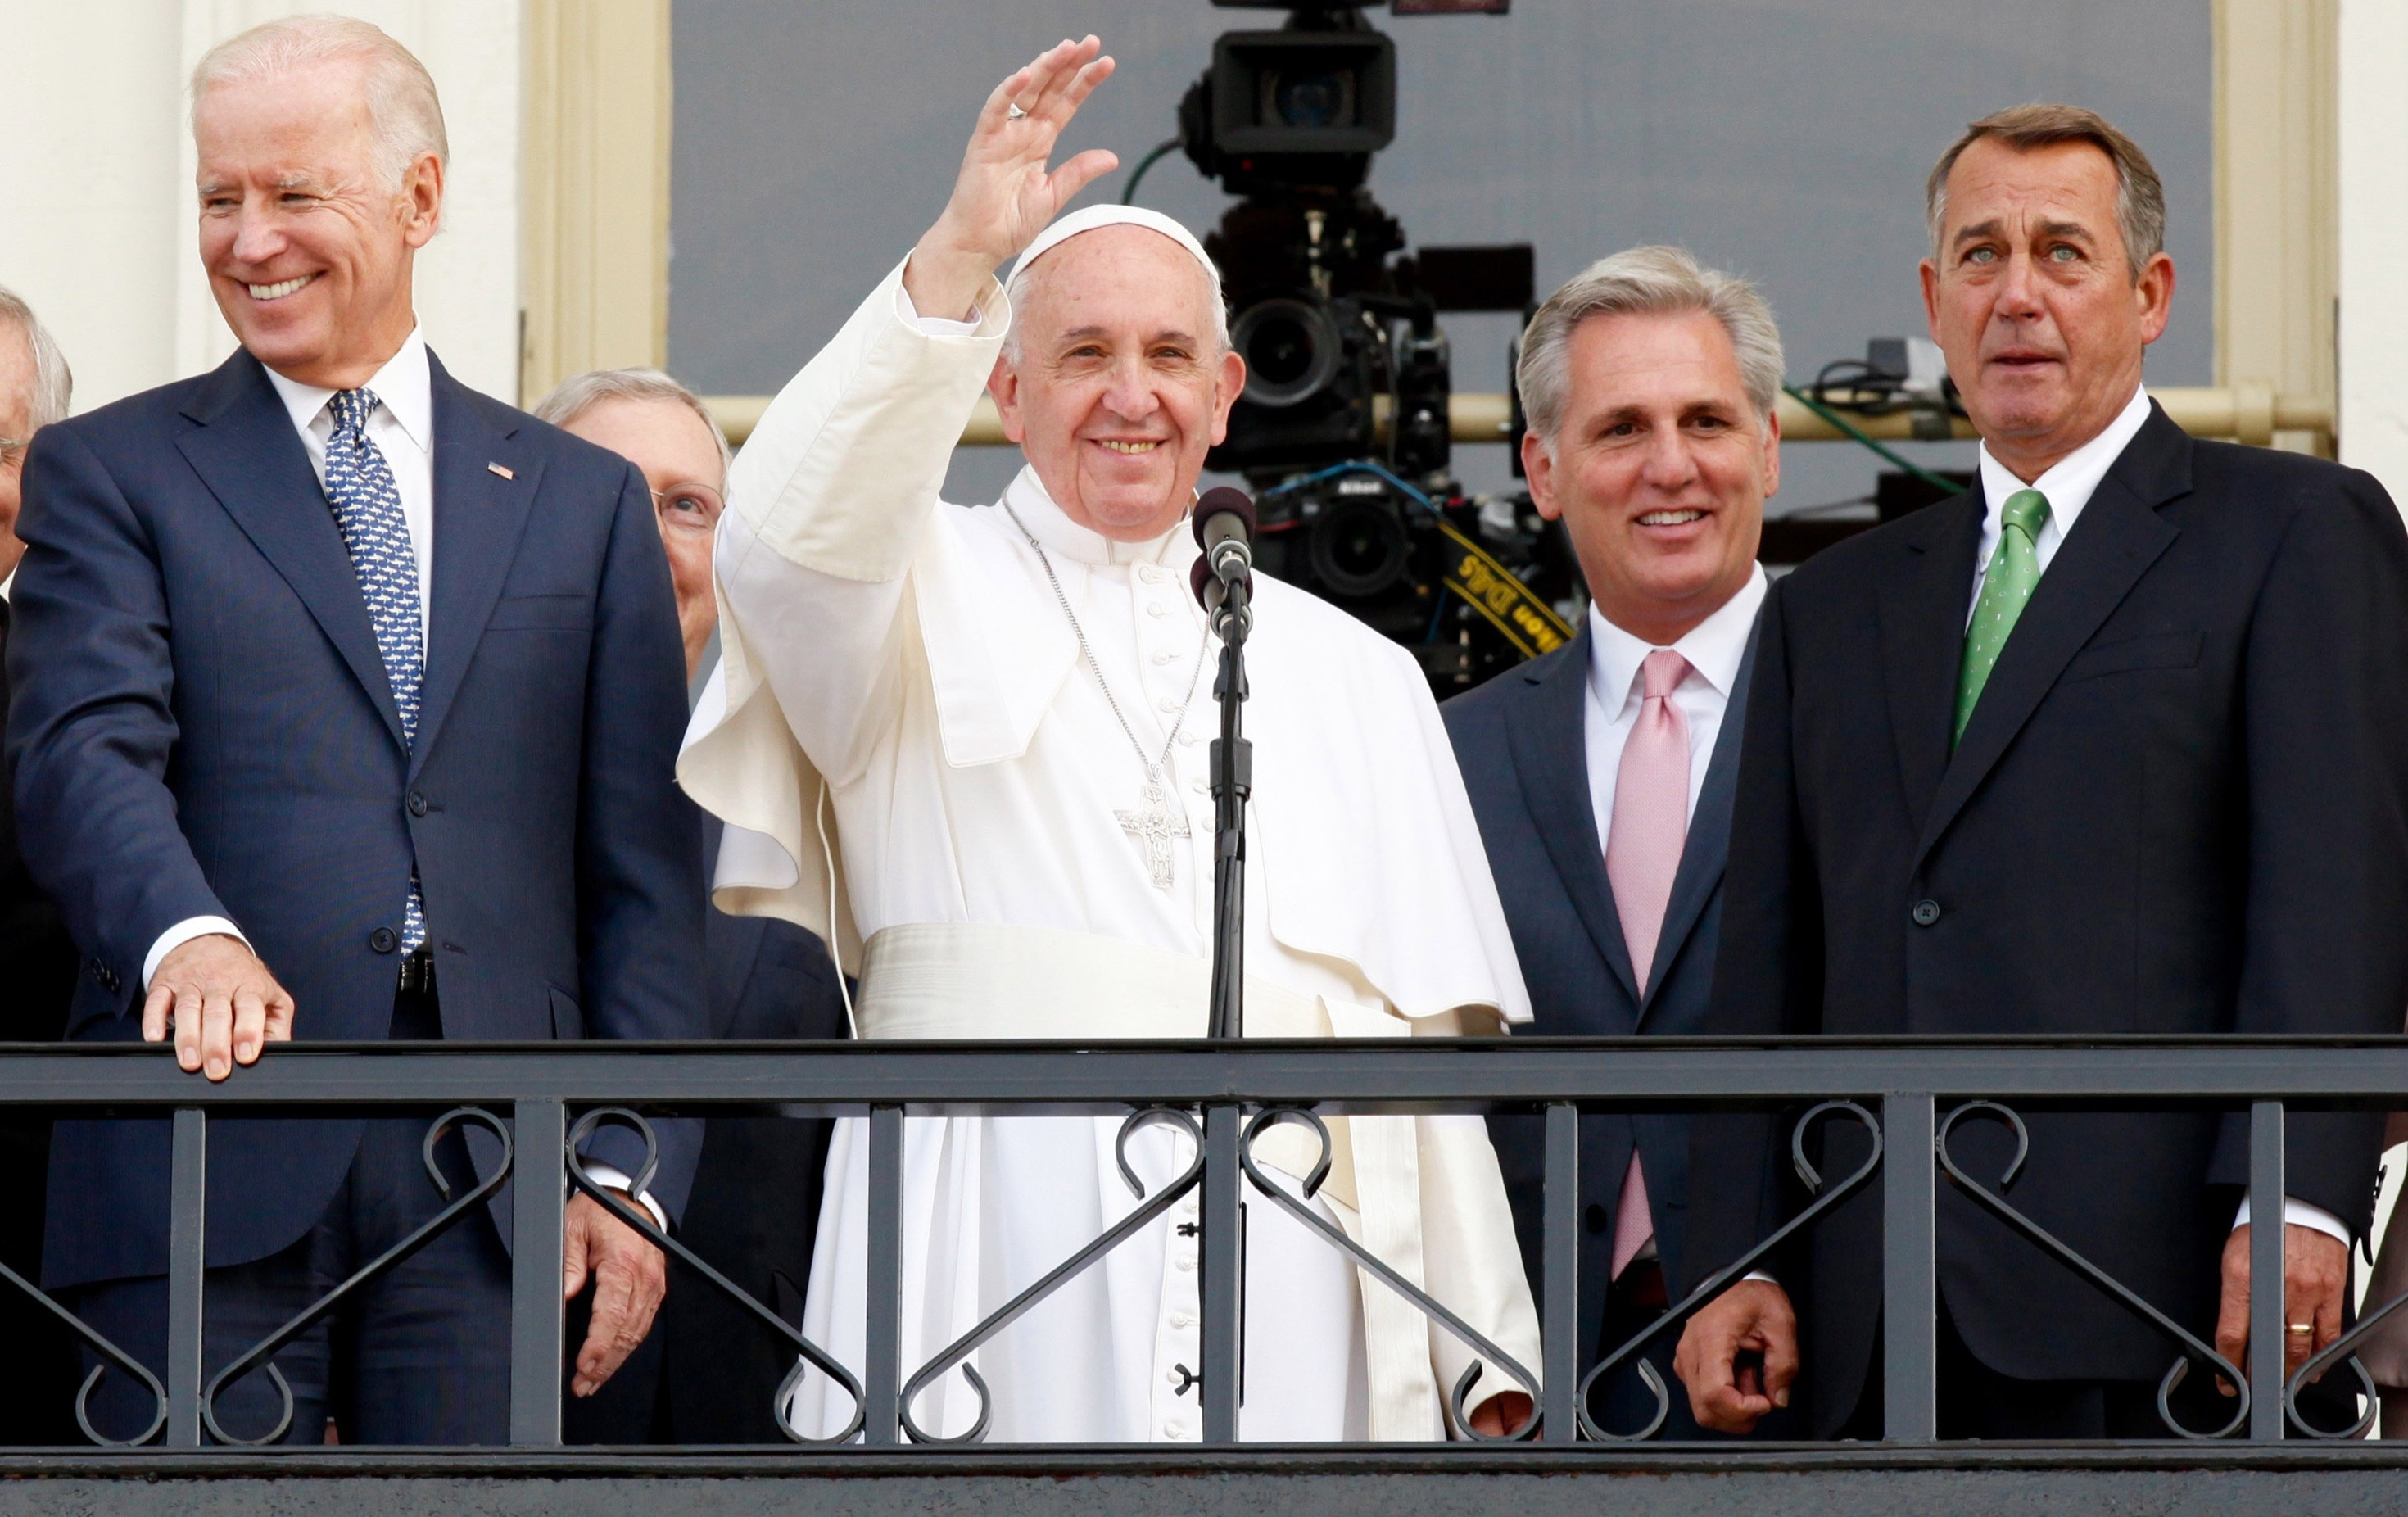 Pope Francis reduces US House Speaker to tears during address to Congress